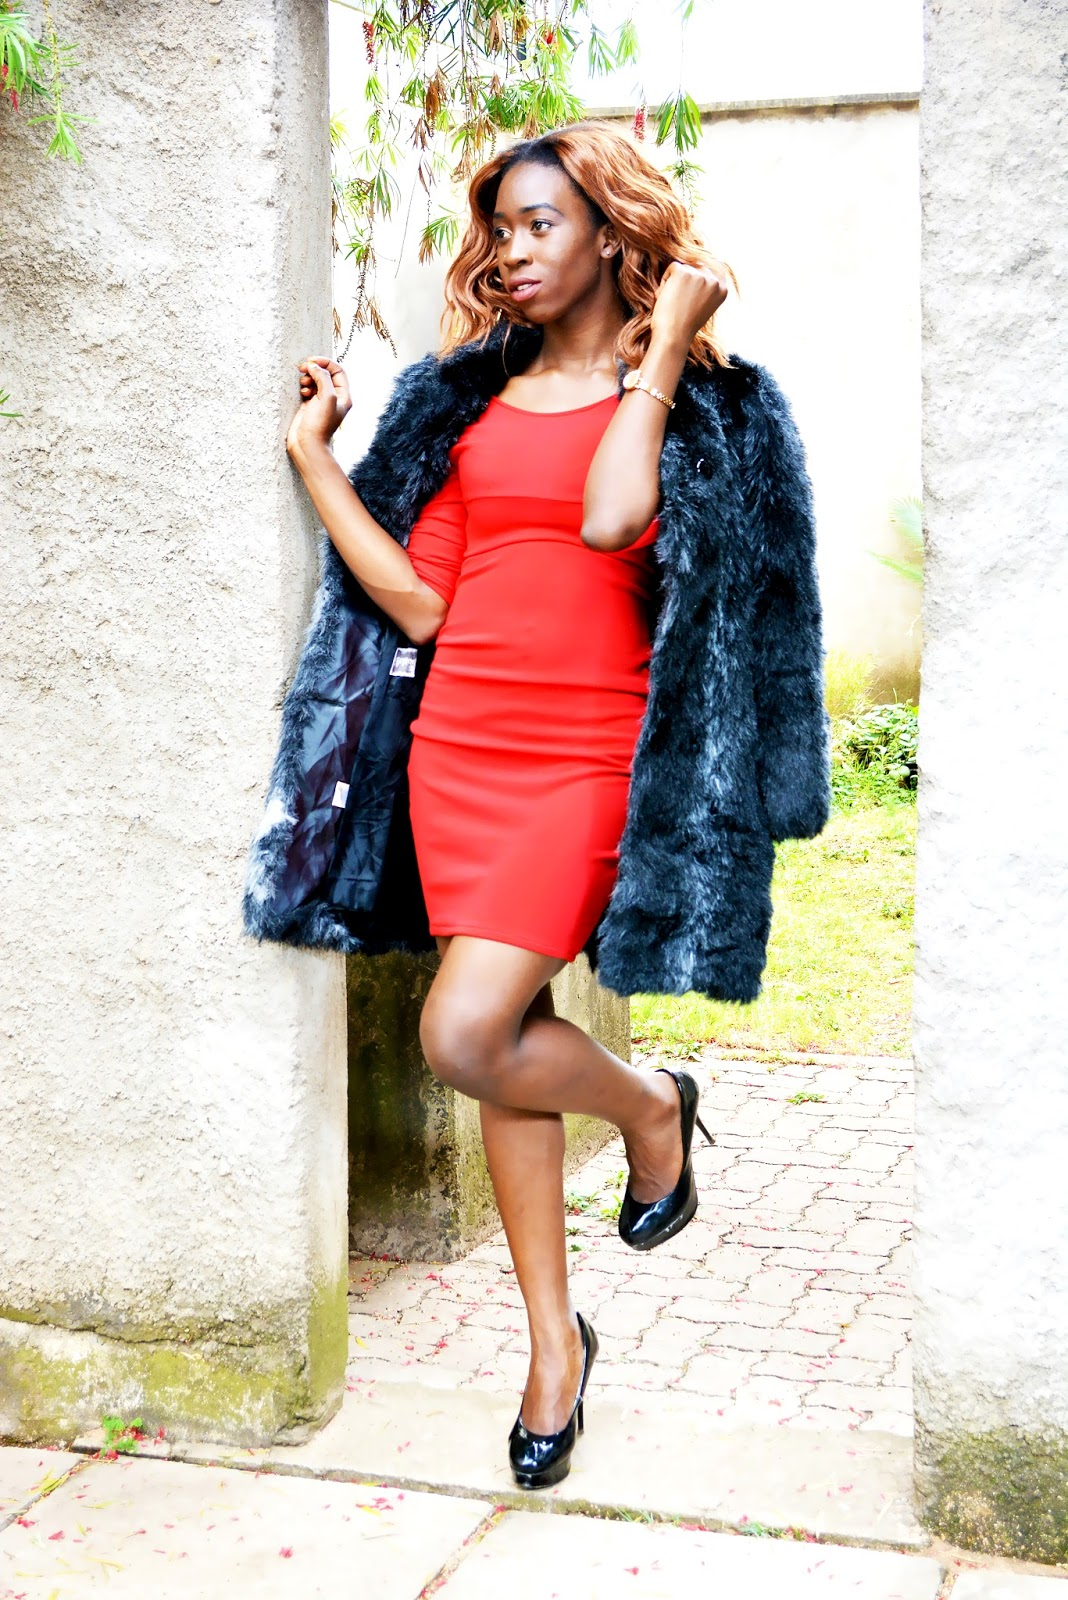 what to wear to a date, little red dress, red dress, fur coat over a red dress, style with Ezil, Ezil, African fashion blogger, Kenyan fashion blogger.